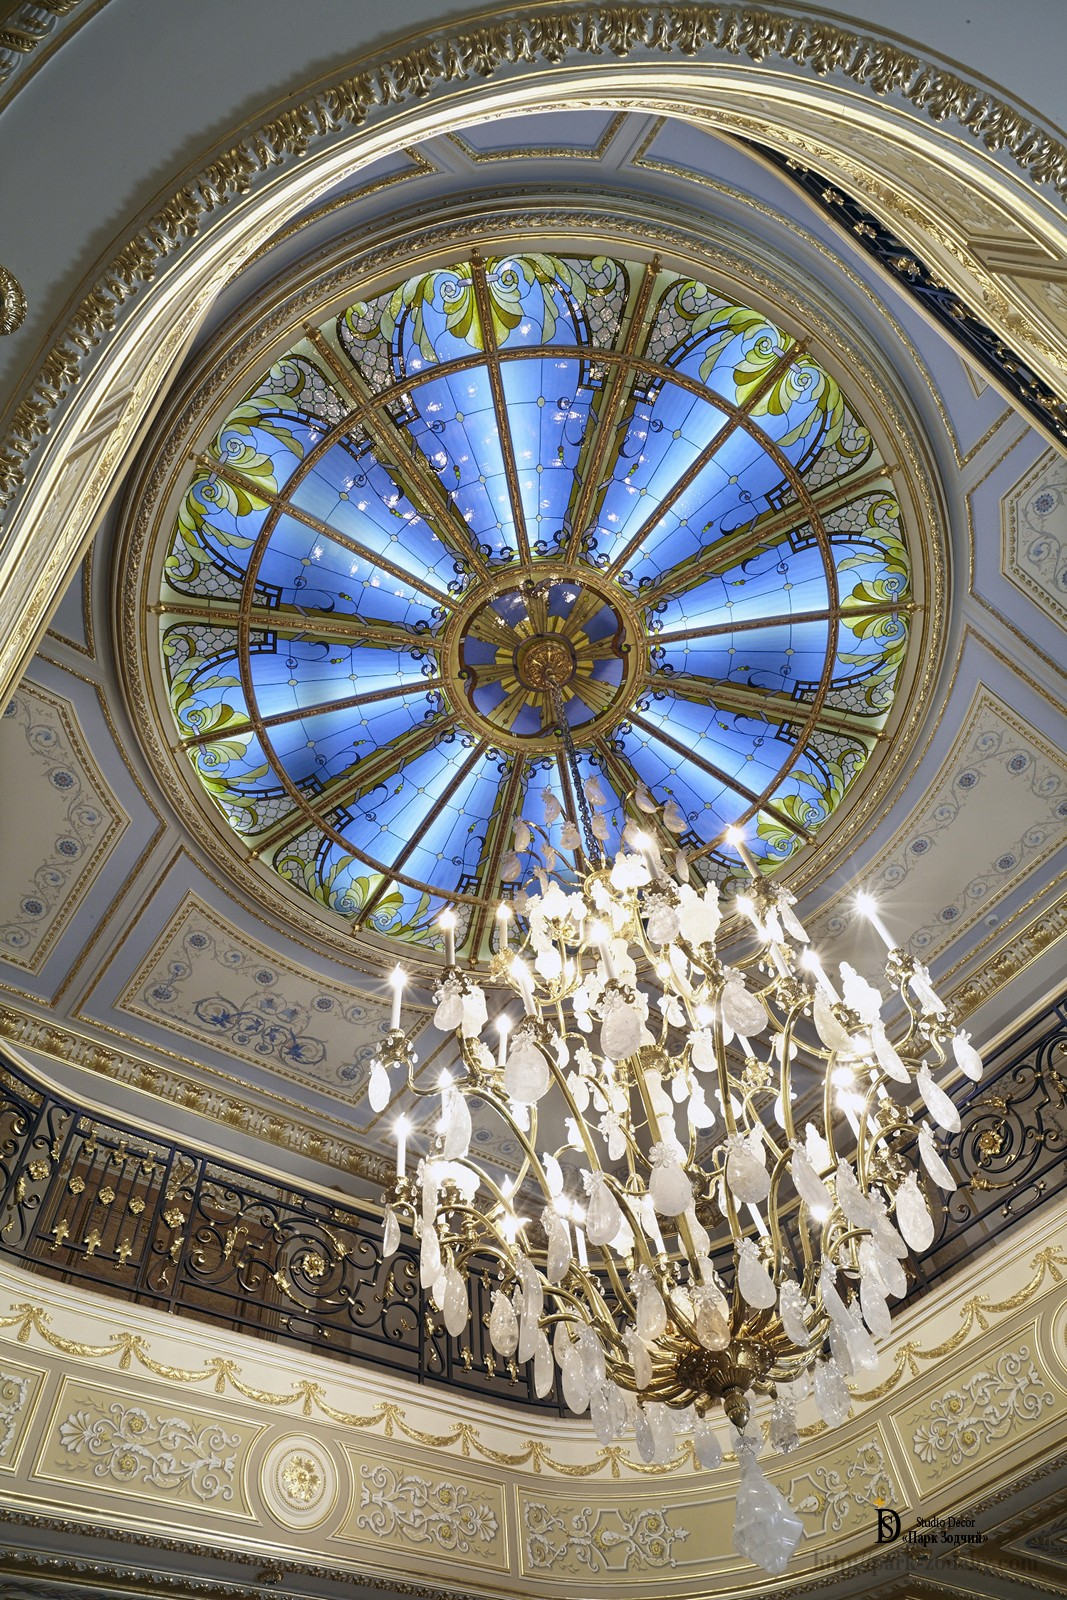 Stained glass ceiling in the residence